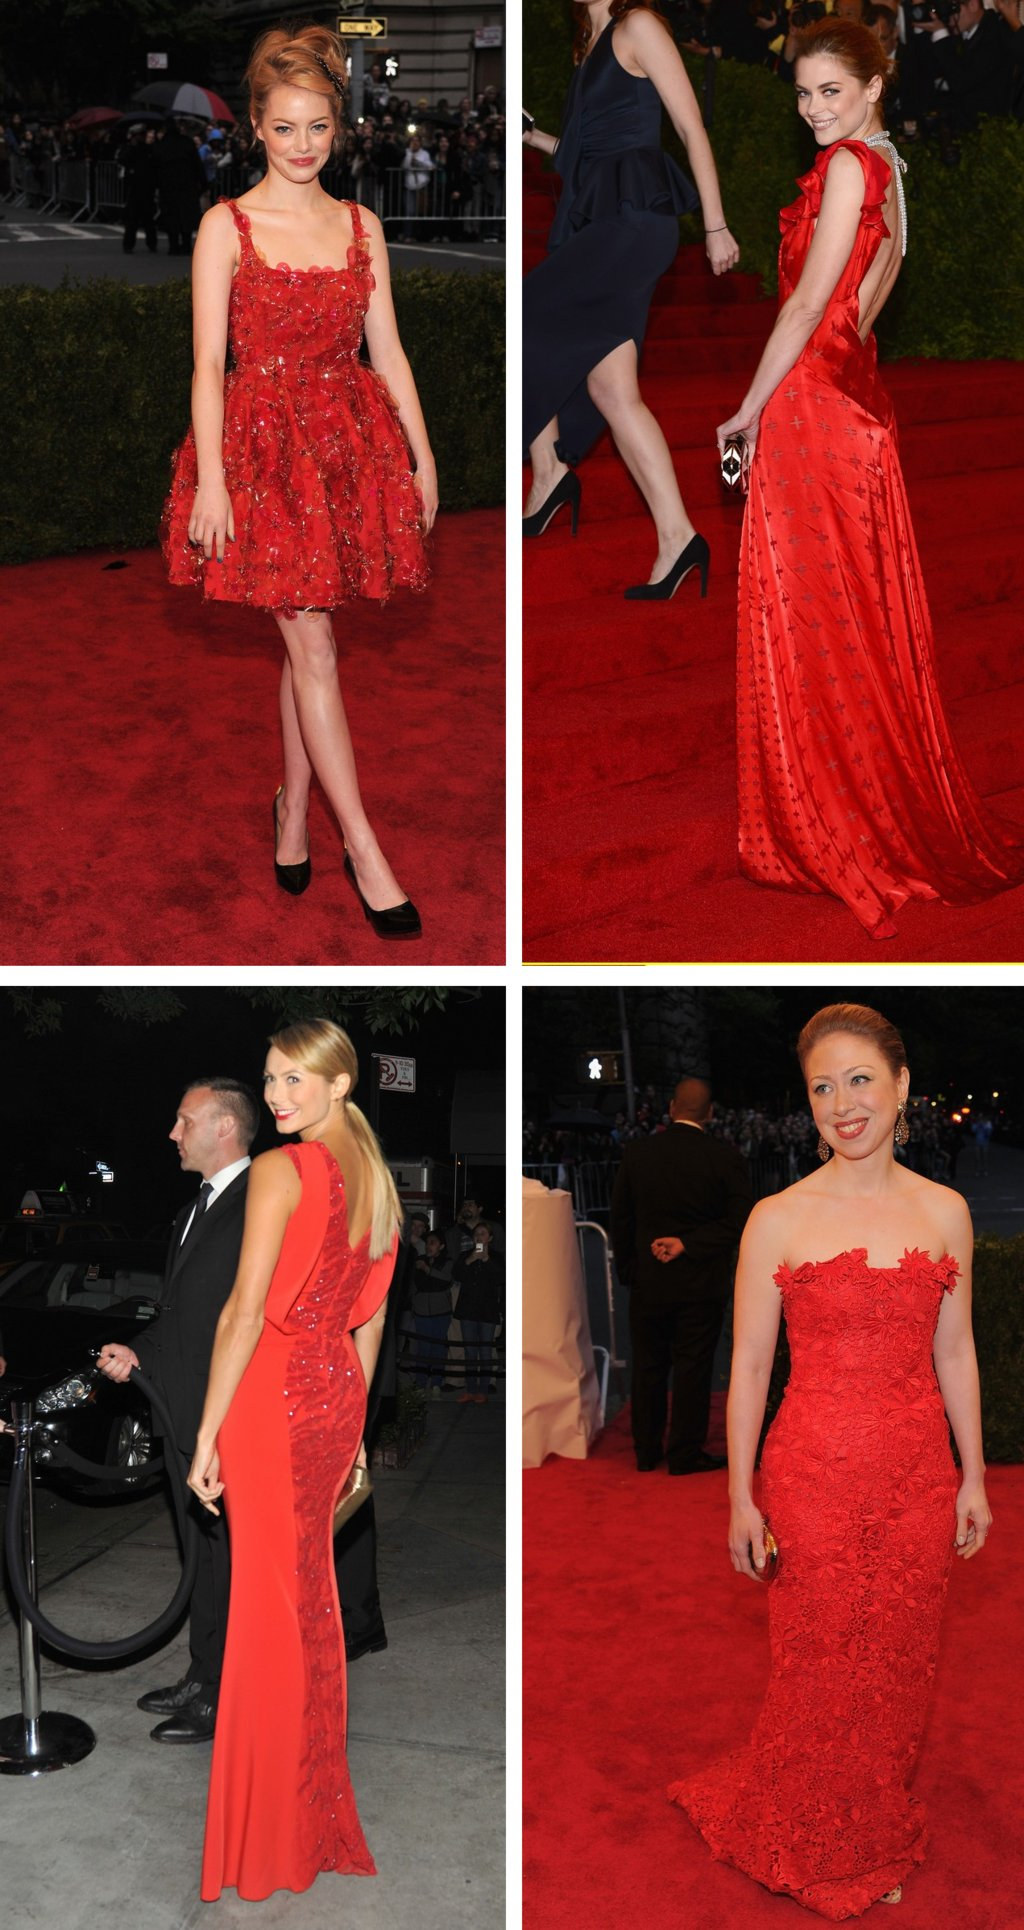 Met-gala-wedding-inspiration-red-gowns-frocks.full